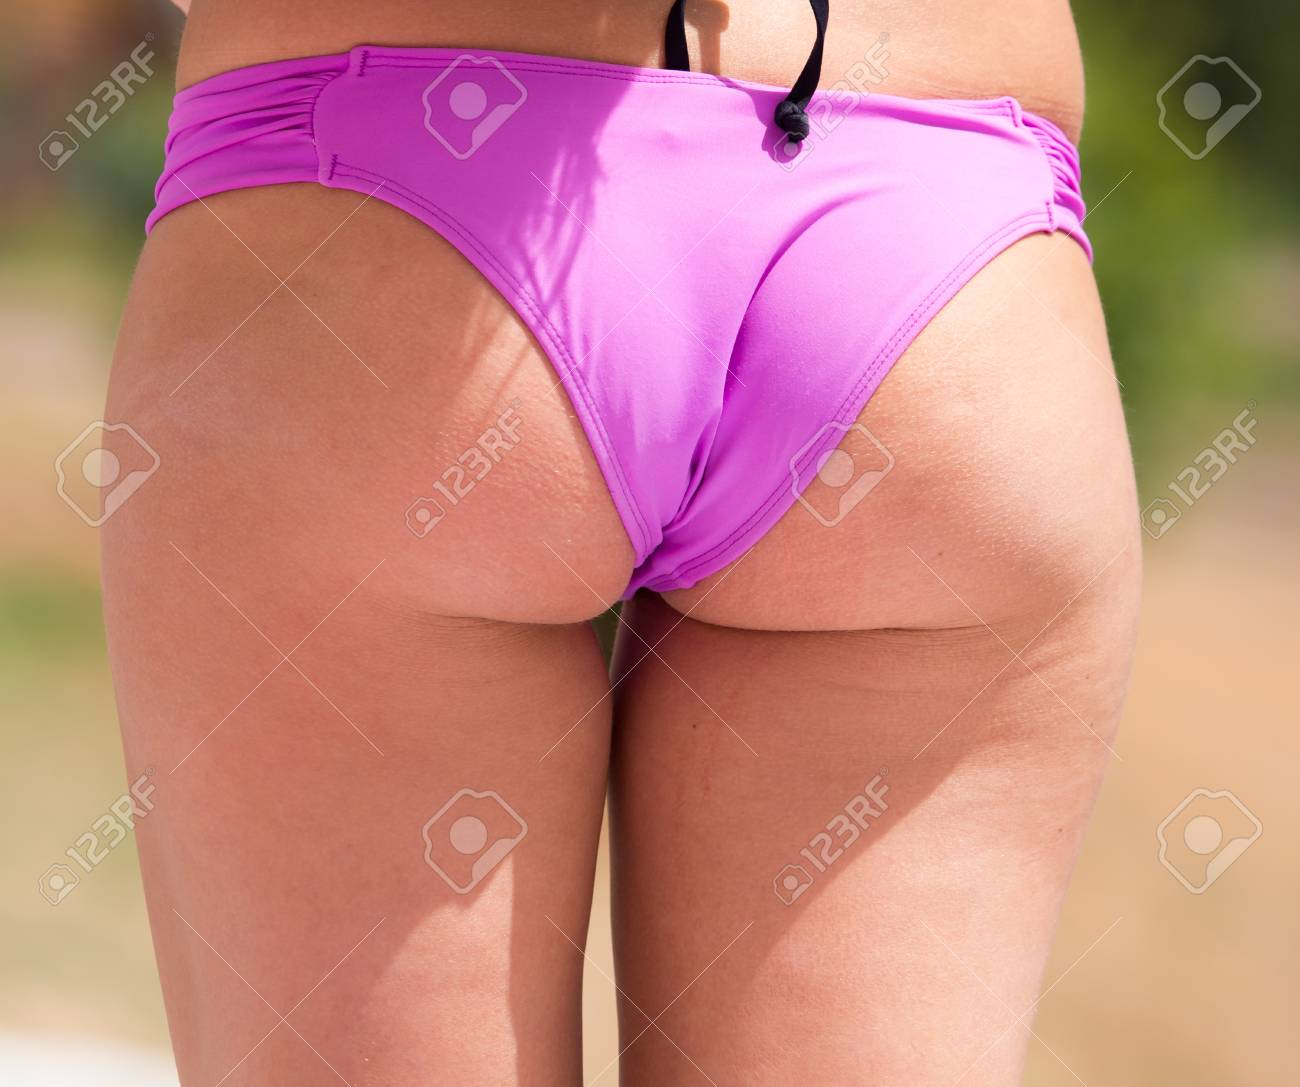 Booty pics girls Beautiful Booty Girls In A Swimsuit Outdoors Stock Photo Picture And Royalty Free Image Image 93508097